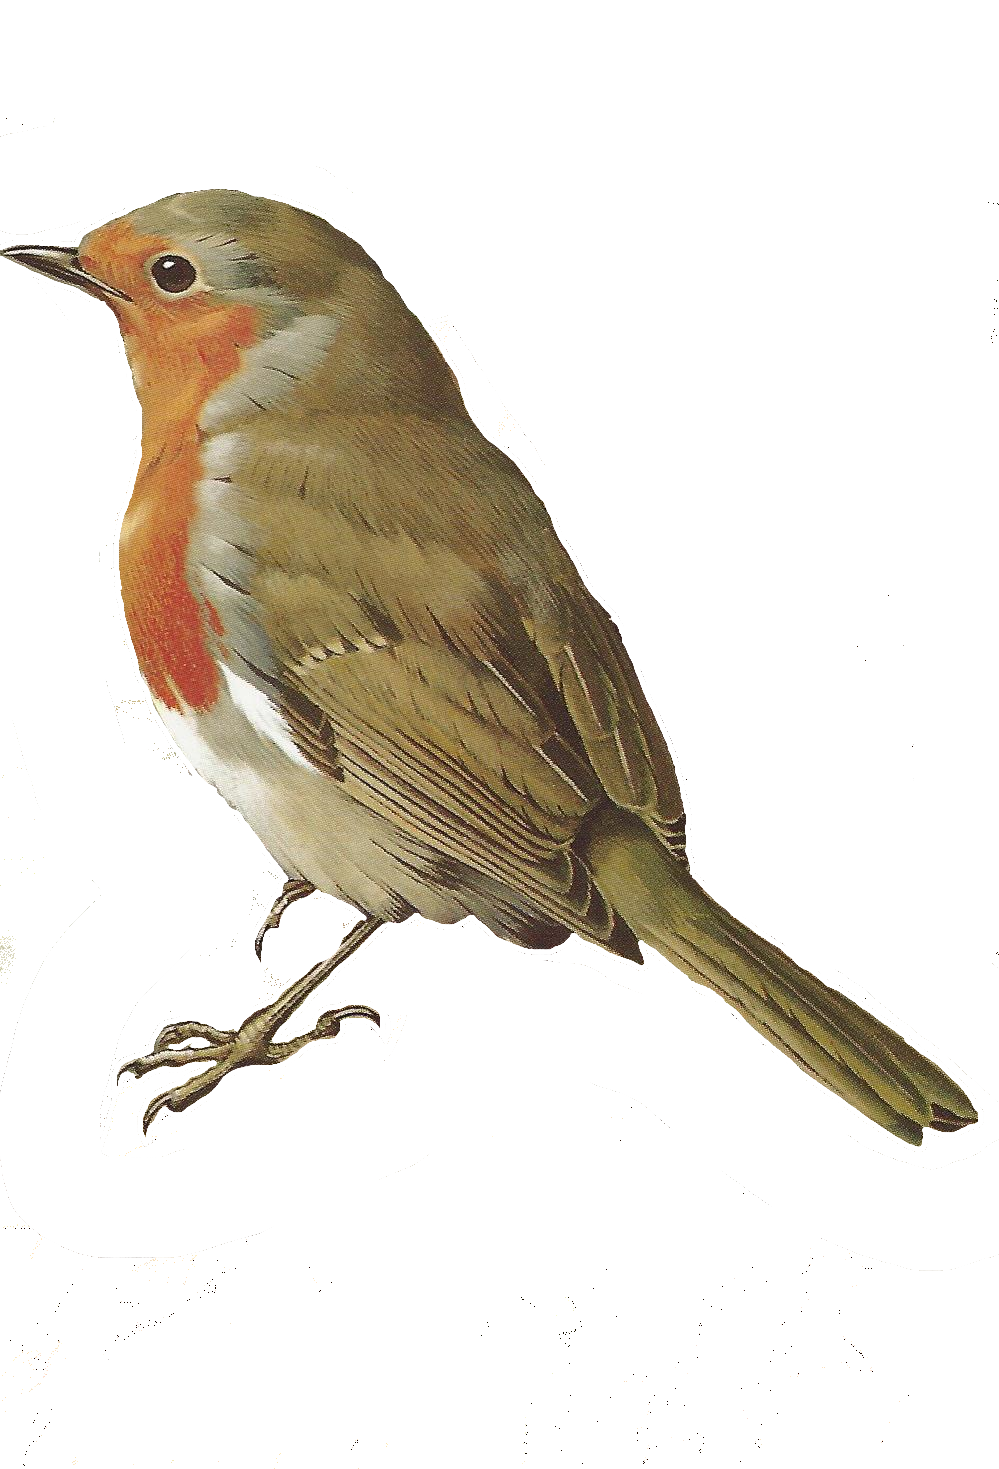 Birds robin. Free images of paper